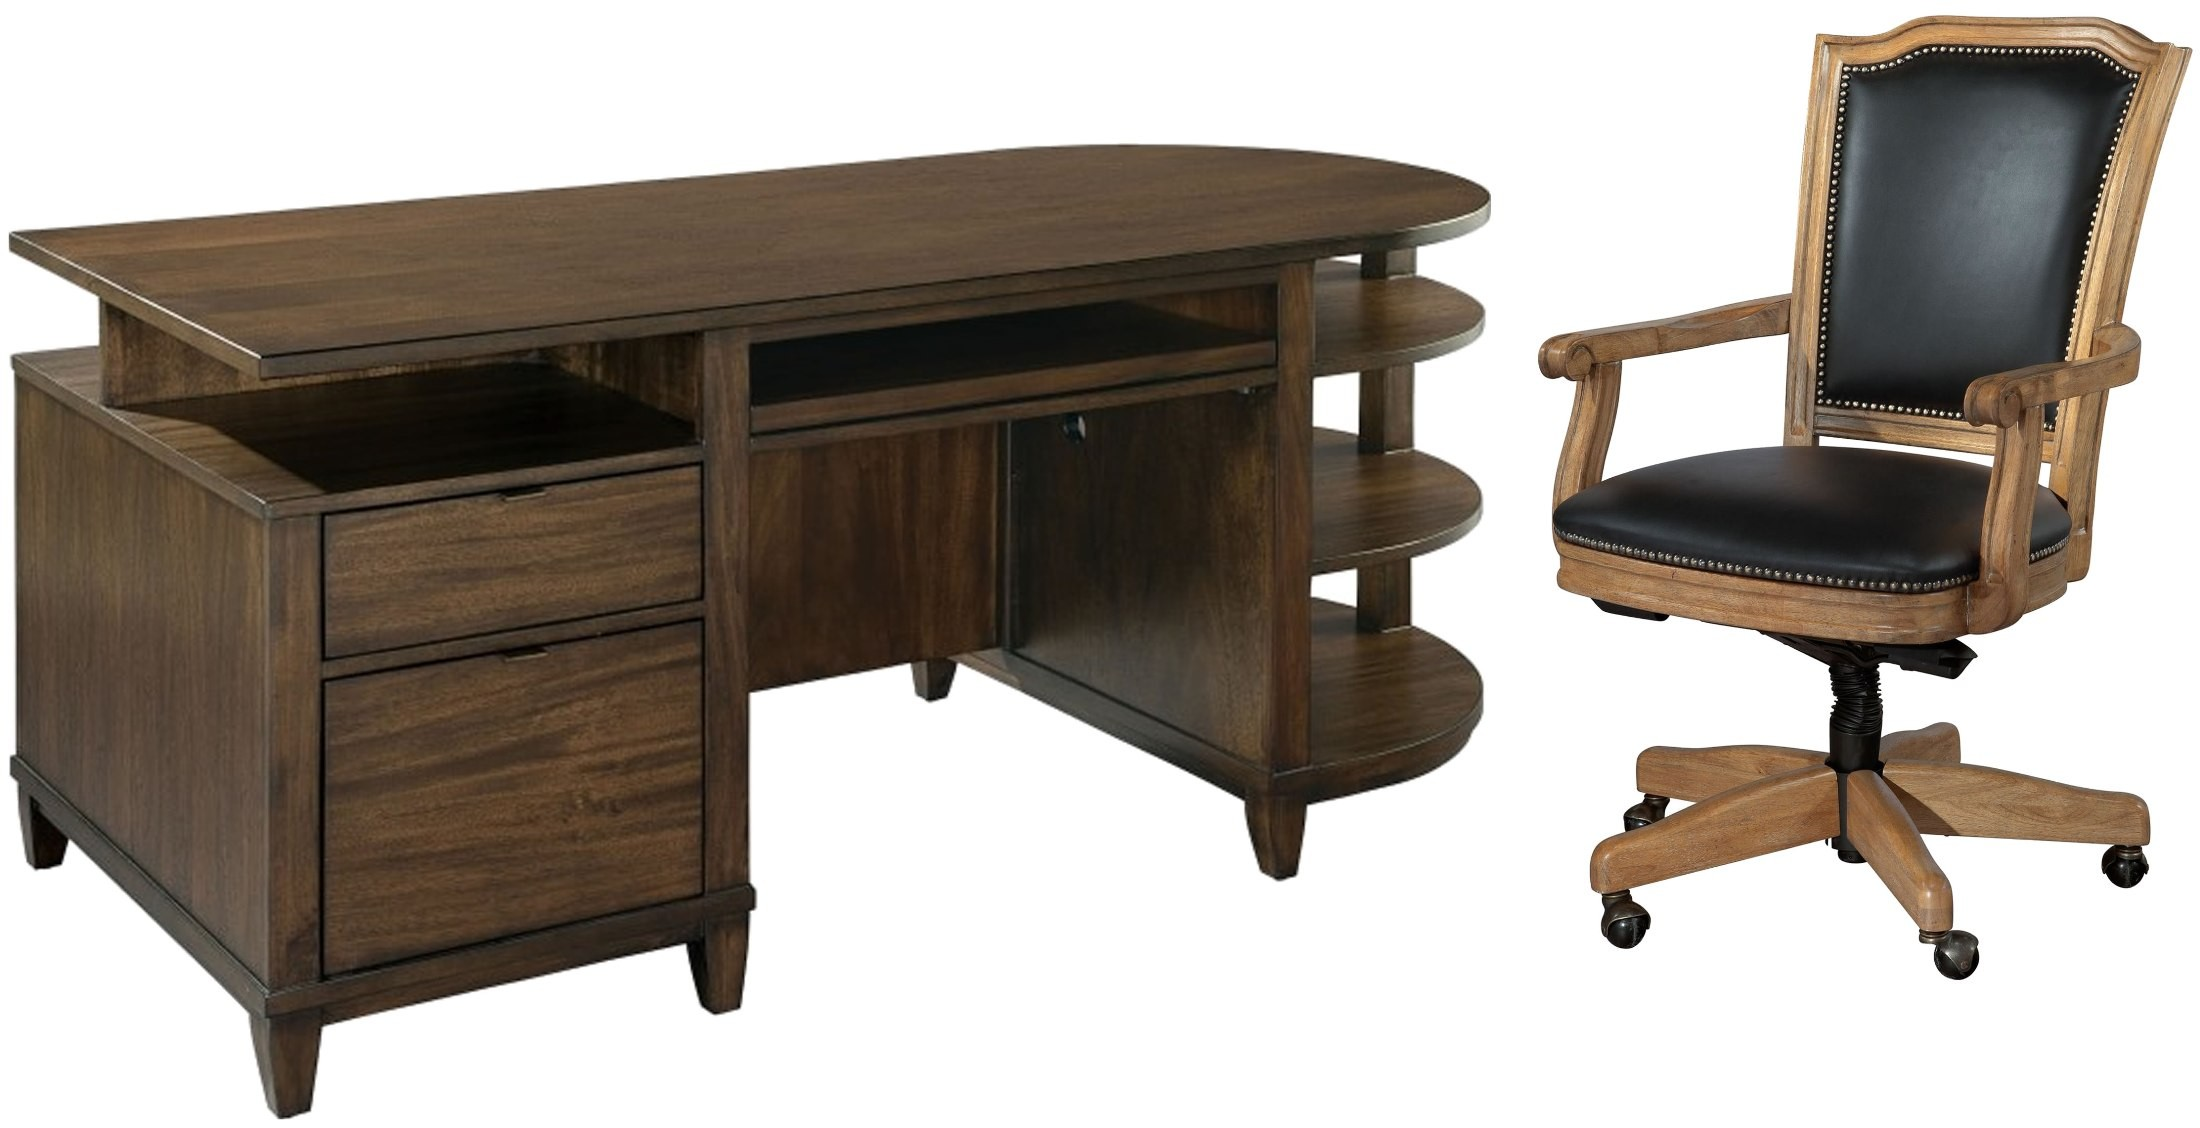 Cantilevered home office set from hekman furniture coleman furniture - Home office furniture set ...